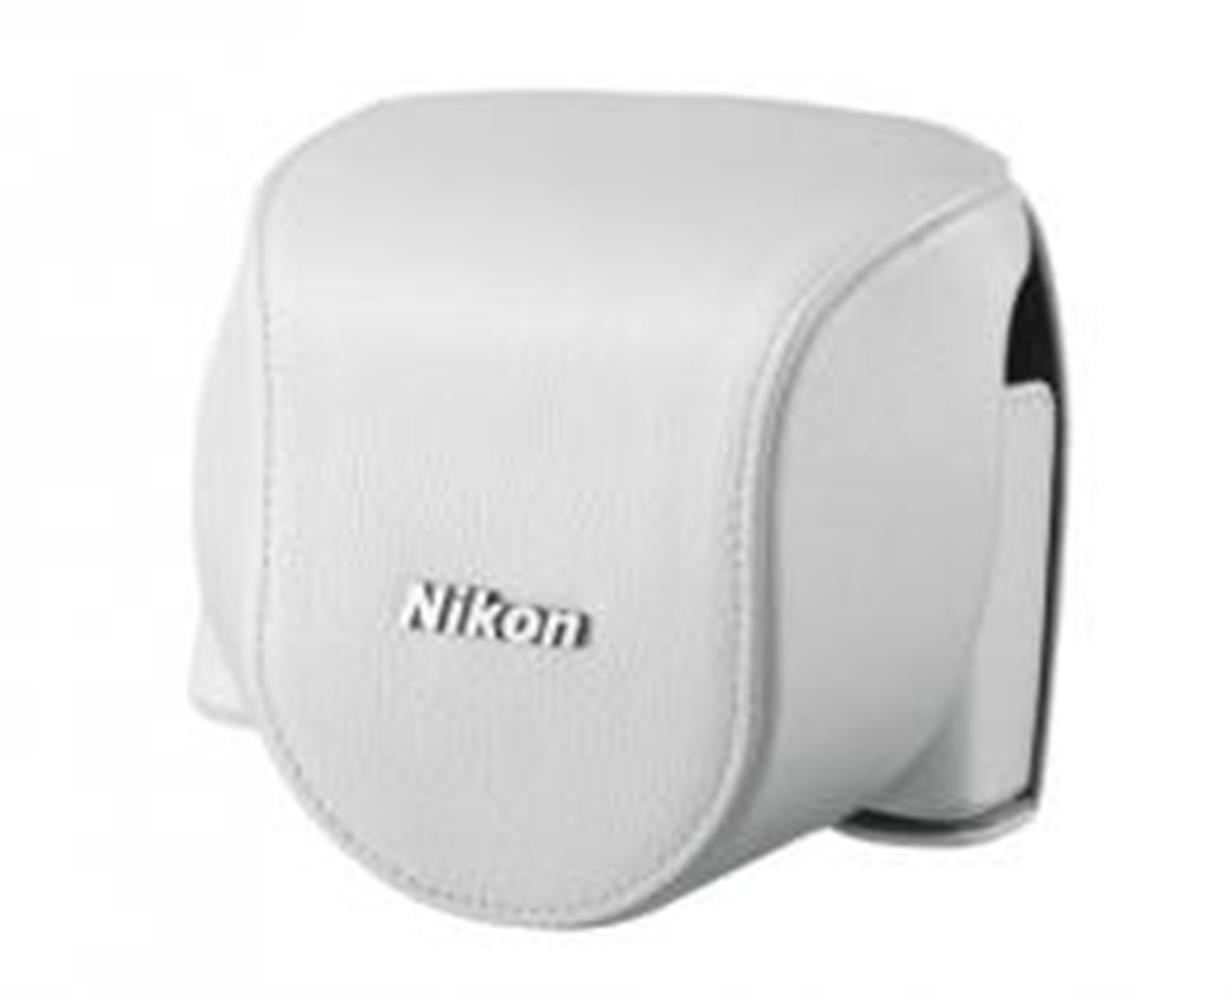 NIKON CB-N4000SA BODY CASE WHITE (V2)